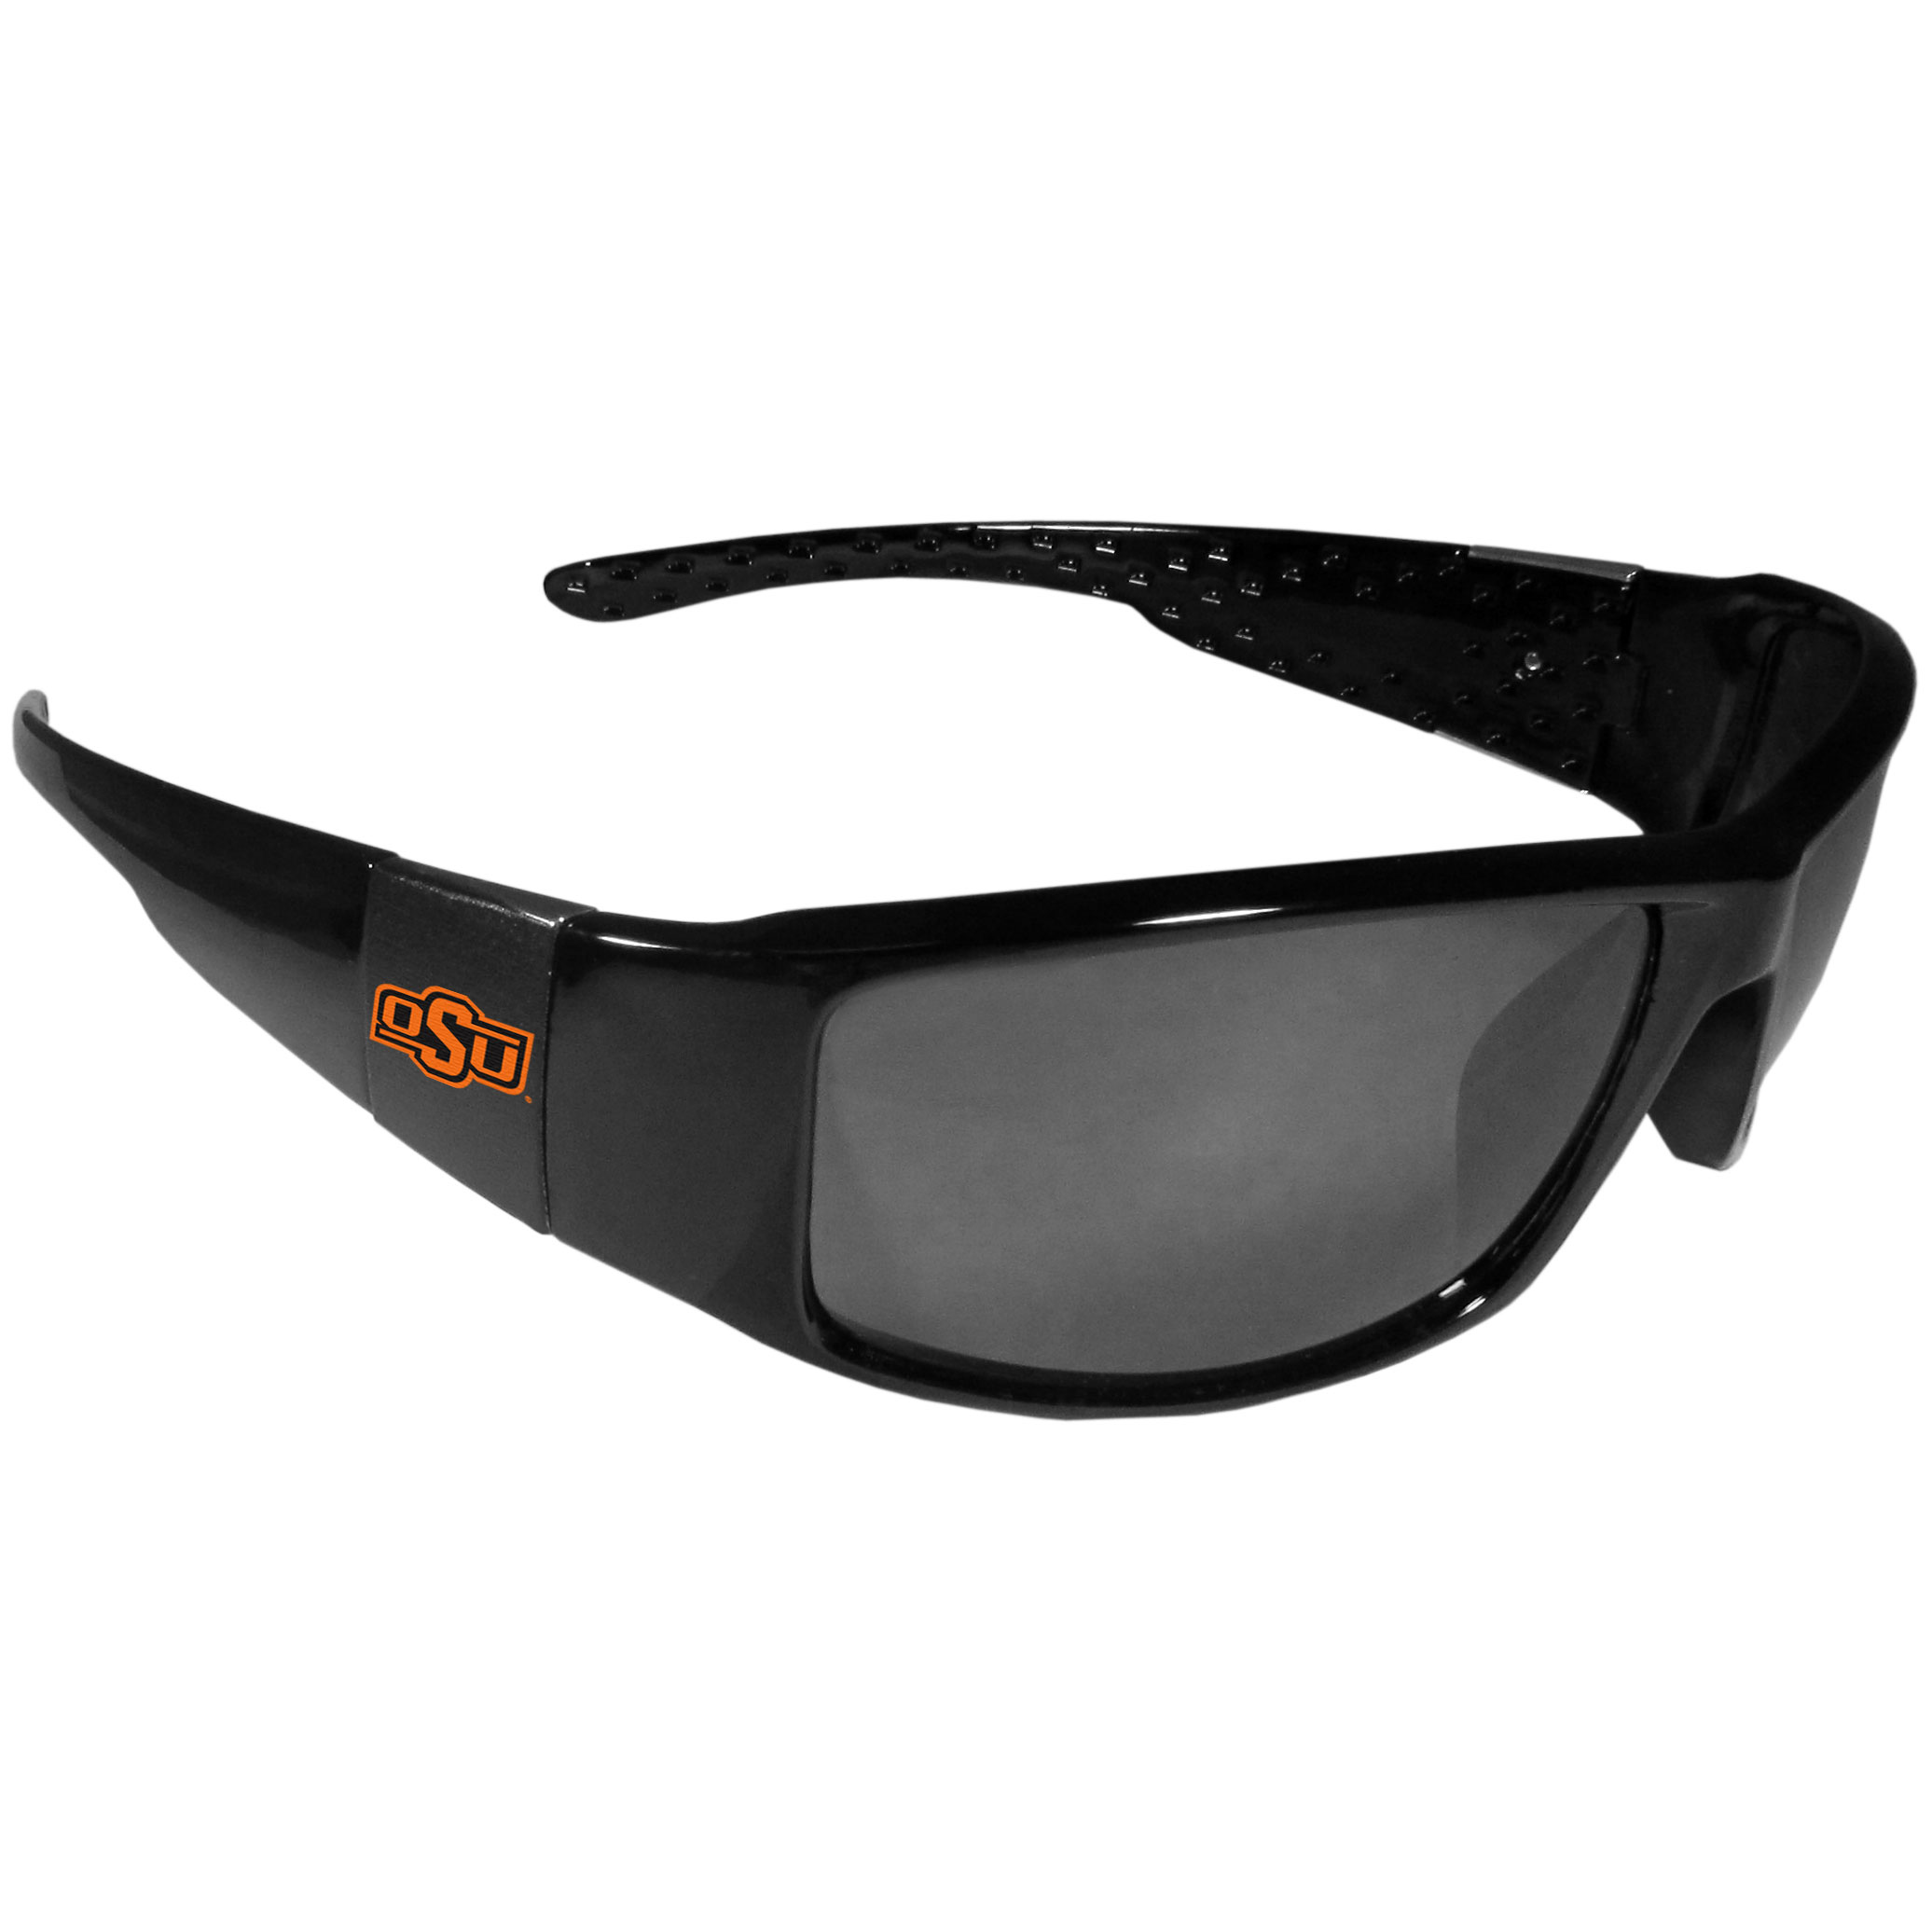 Oklahoma St. Cowboys Black Wrap Sunglasses - These designer inspired frames have a sleek look in all black with  Oklahoma St. Cowboys shields on each arm with a printed logo. The shades are perfect for any outdoor activity like; golfing, driving, hiking, fishing or cheering on the team at a tailgating event or at a home game day BBQ with a lens rating of 100% UVA/UVB for maximum UV protection. The high-quality frames are as durable as they are fashionable and with their classic look they are the perfect fan accessory that can be worn everyday for every occasion.